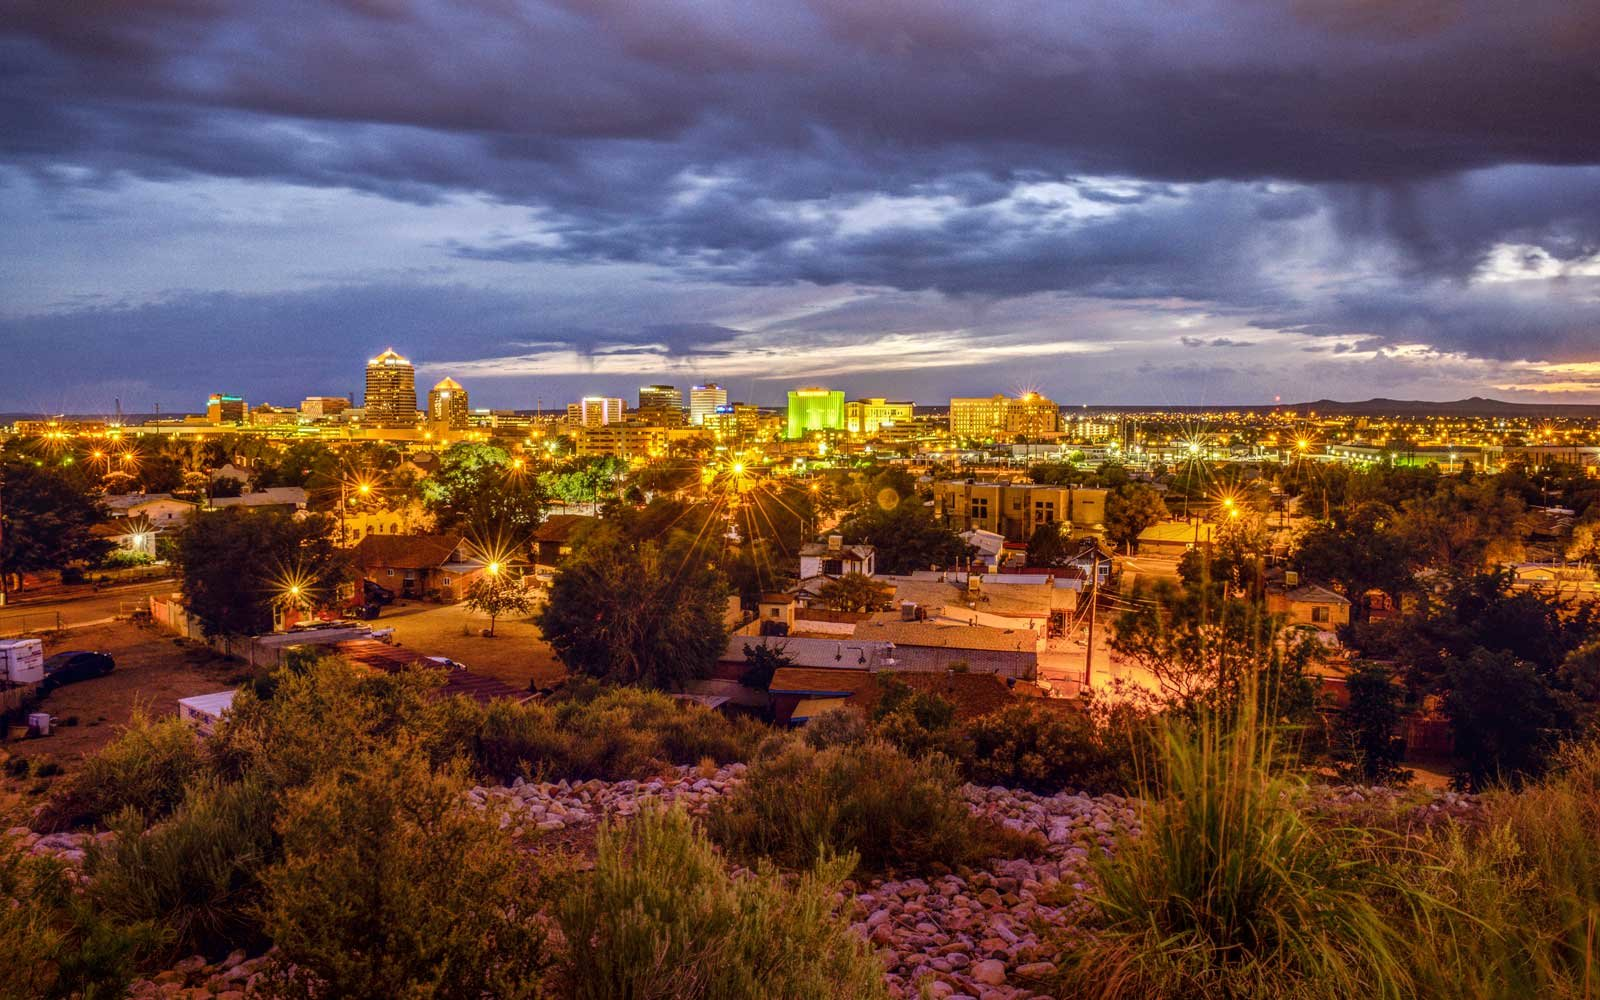 Skyline of downtown Albuquerque, New Mexico, at night